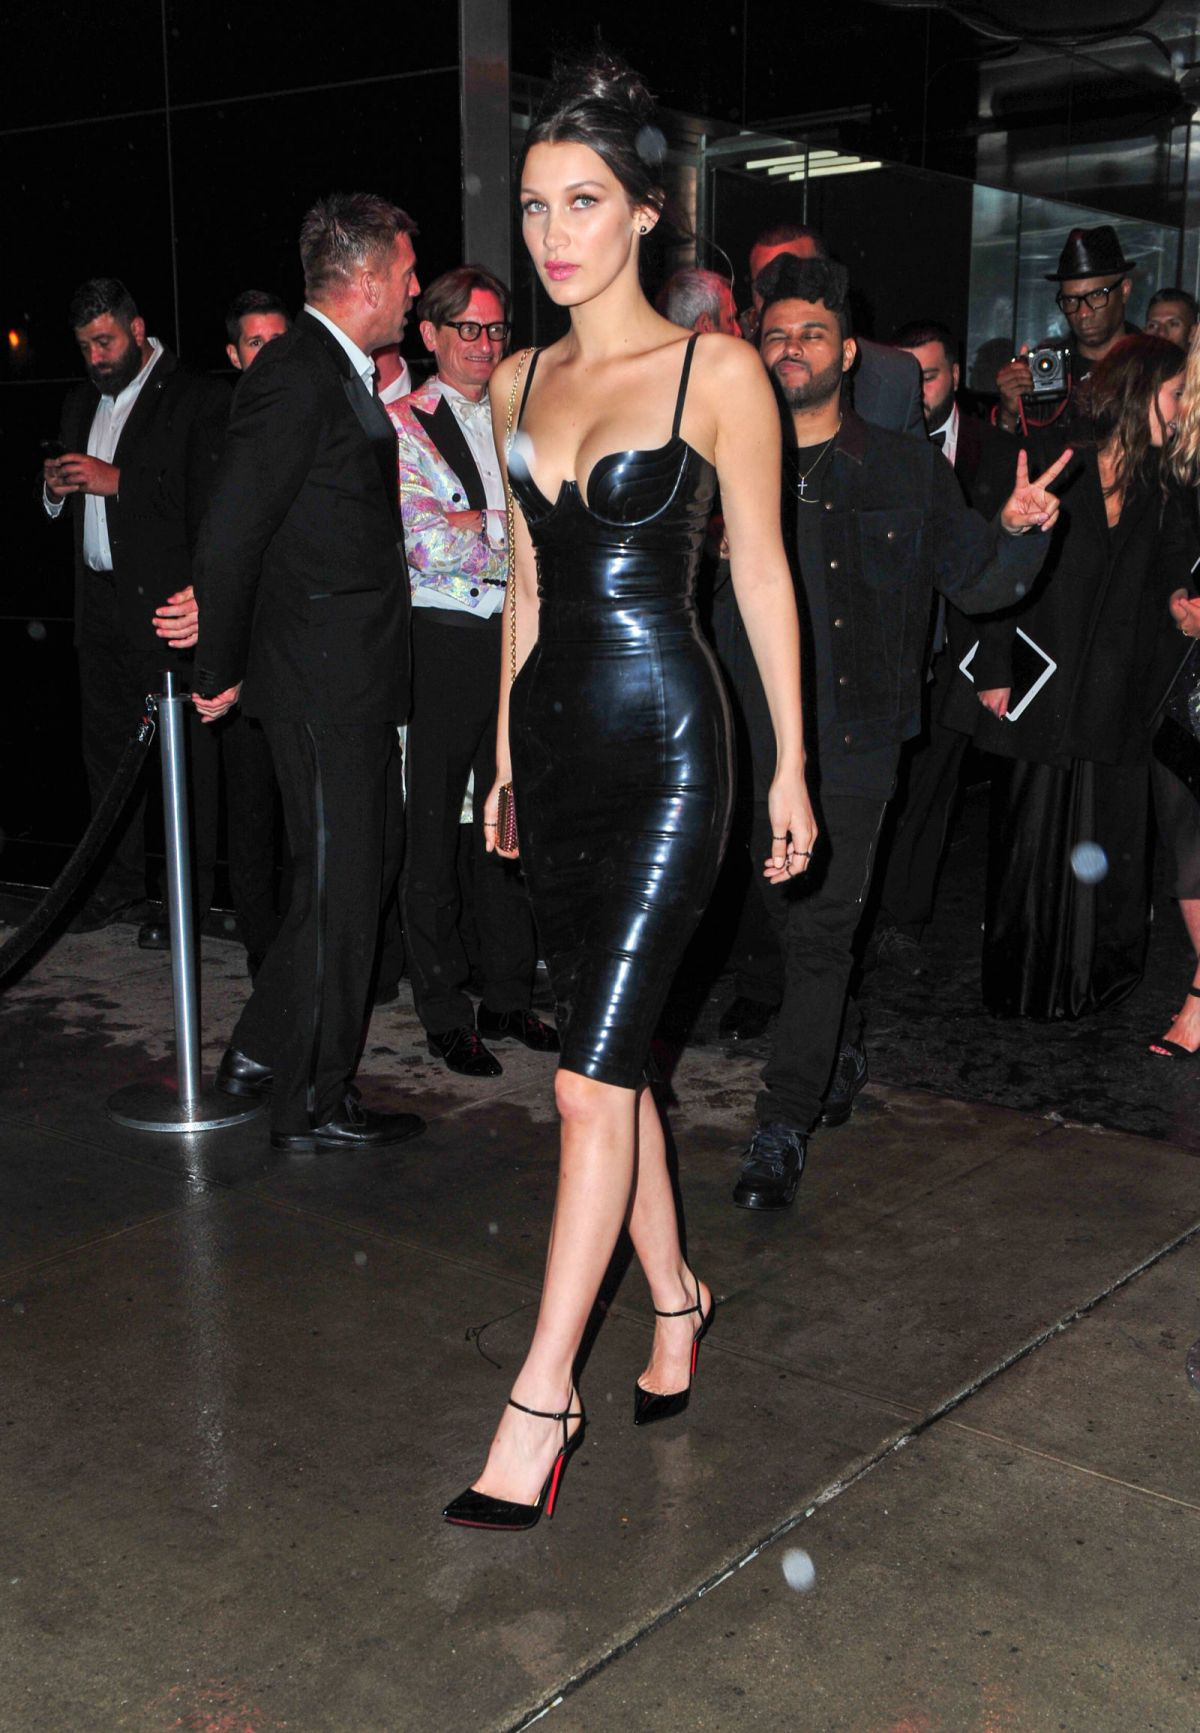 BELLA HADID at Met Gala After-party in New York 05/02/2016